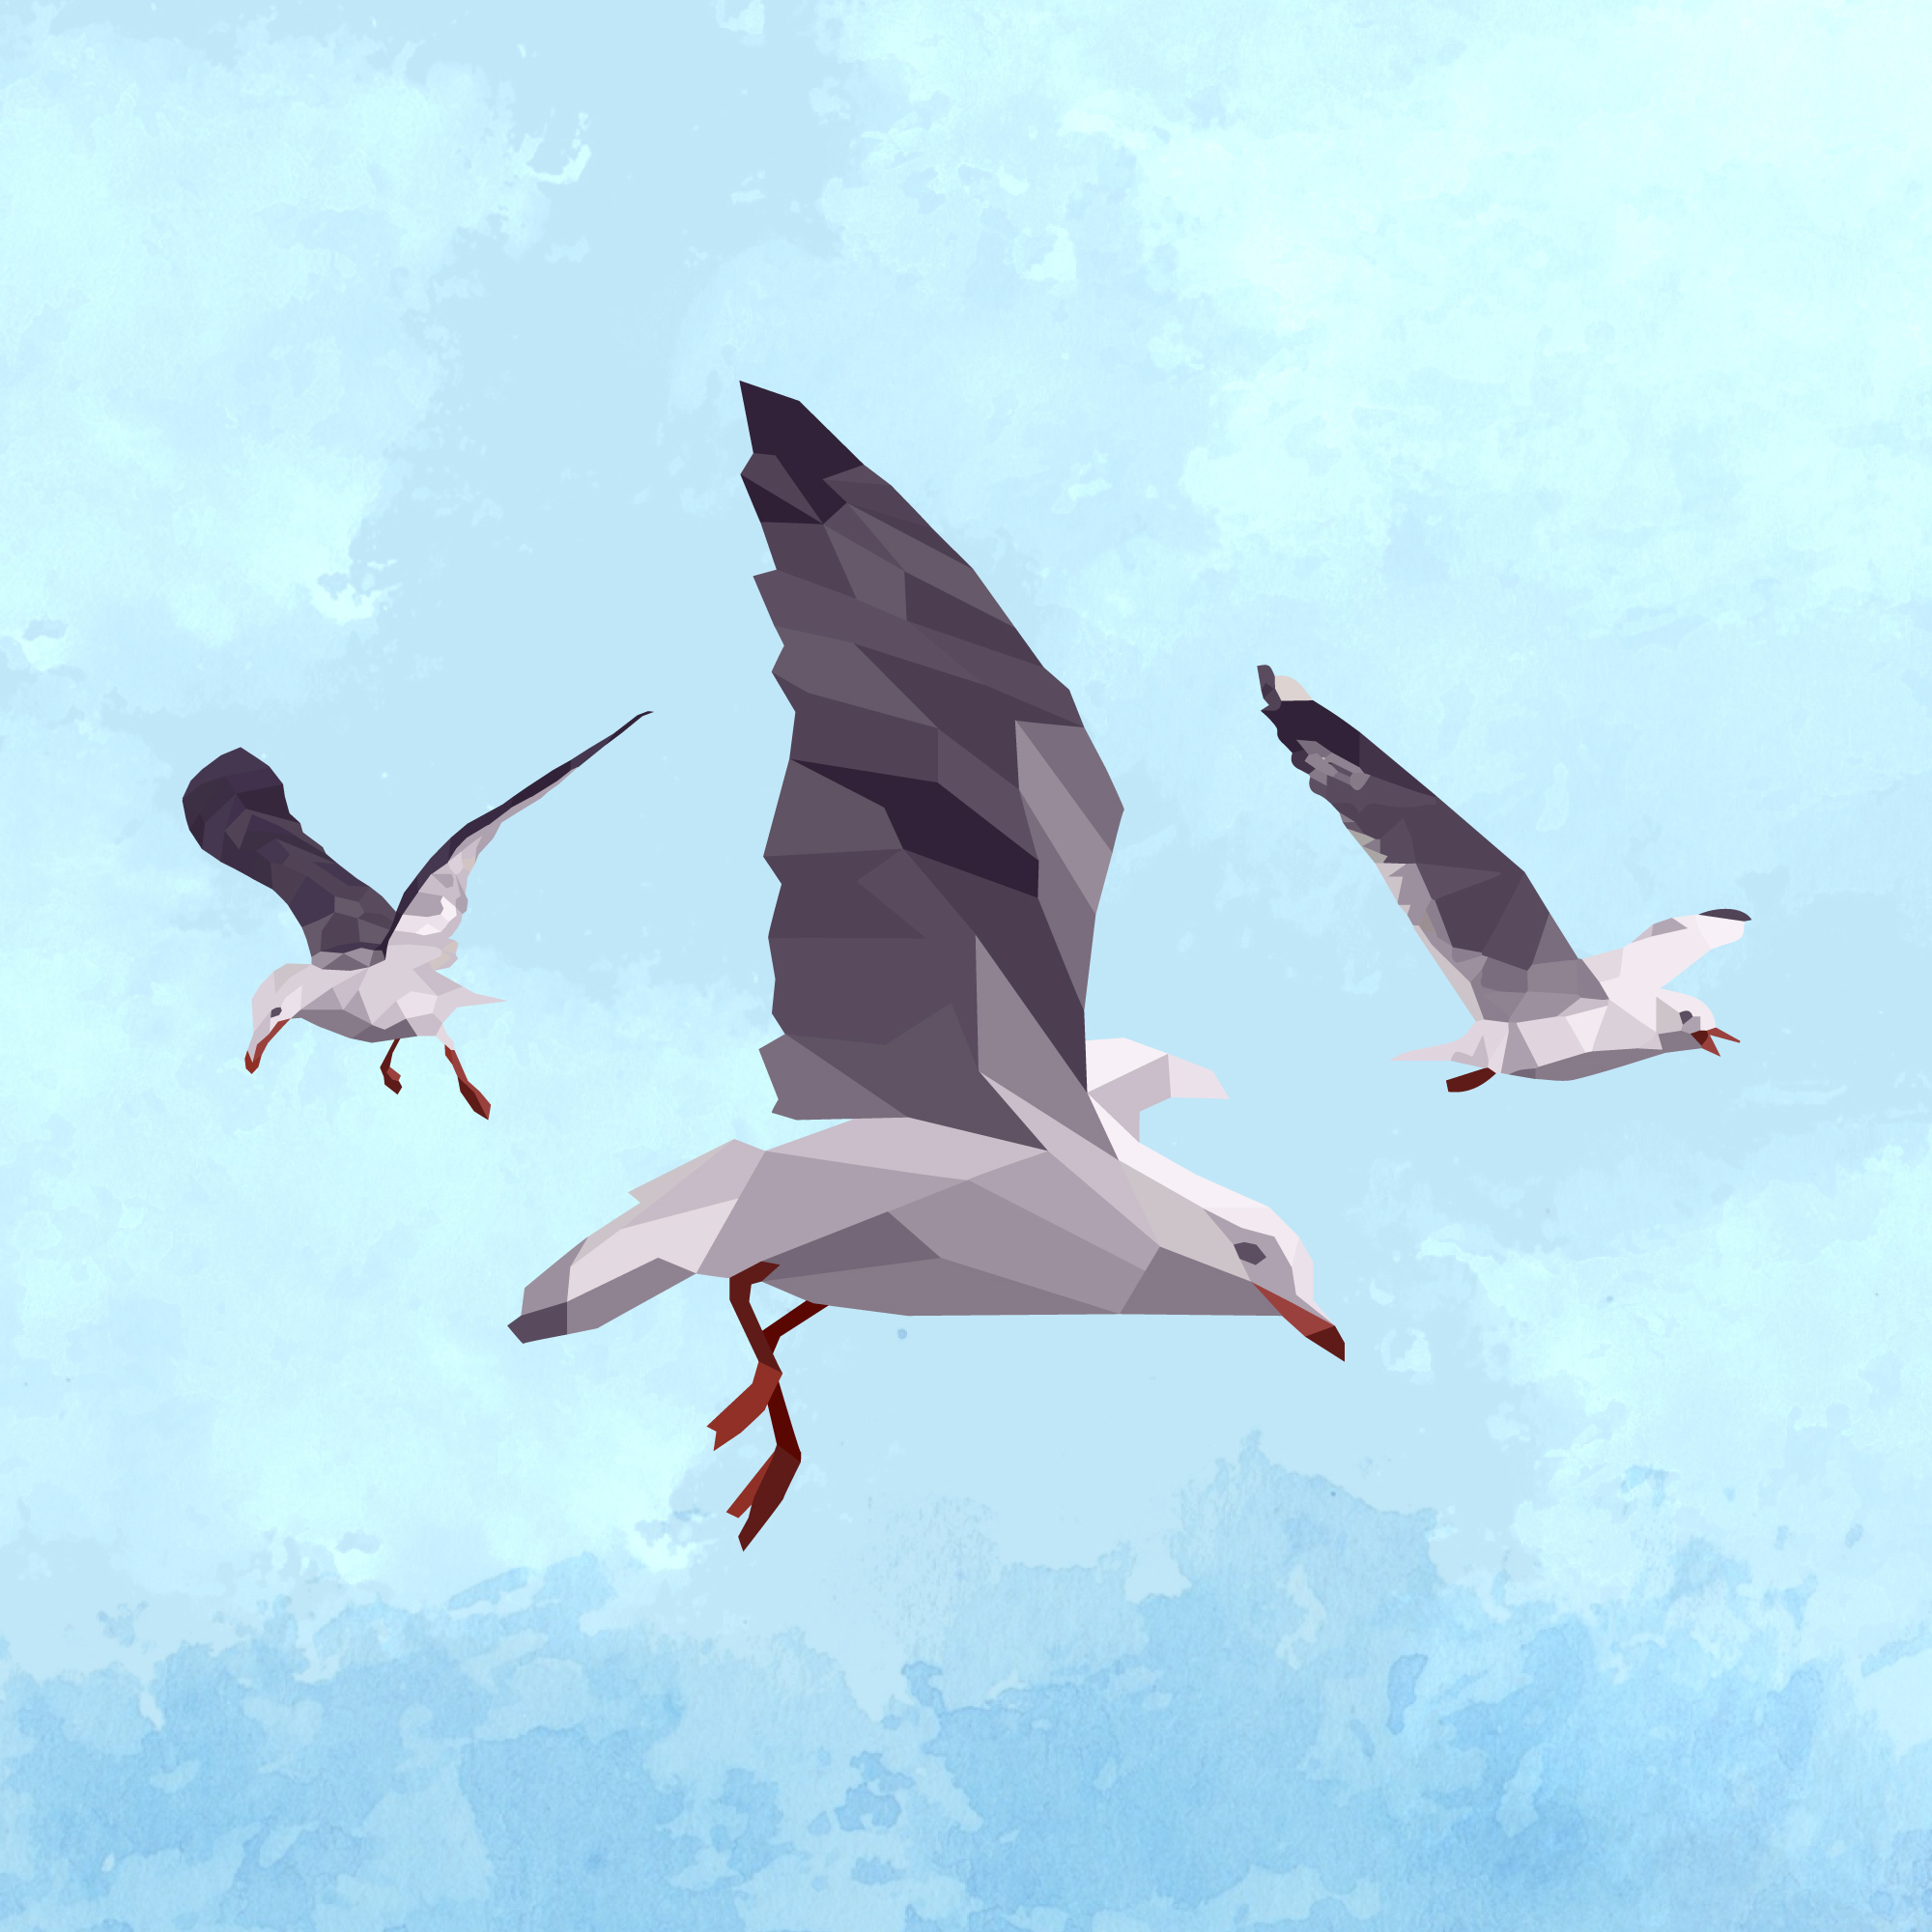 Illustrated image of seagulls to support branding for Changing Markets Foundation